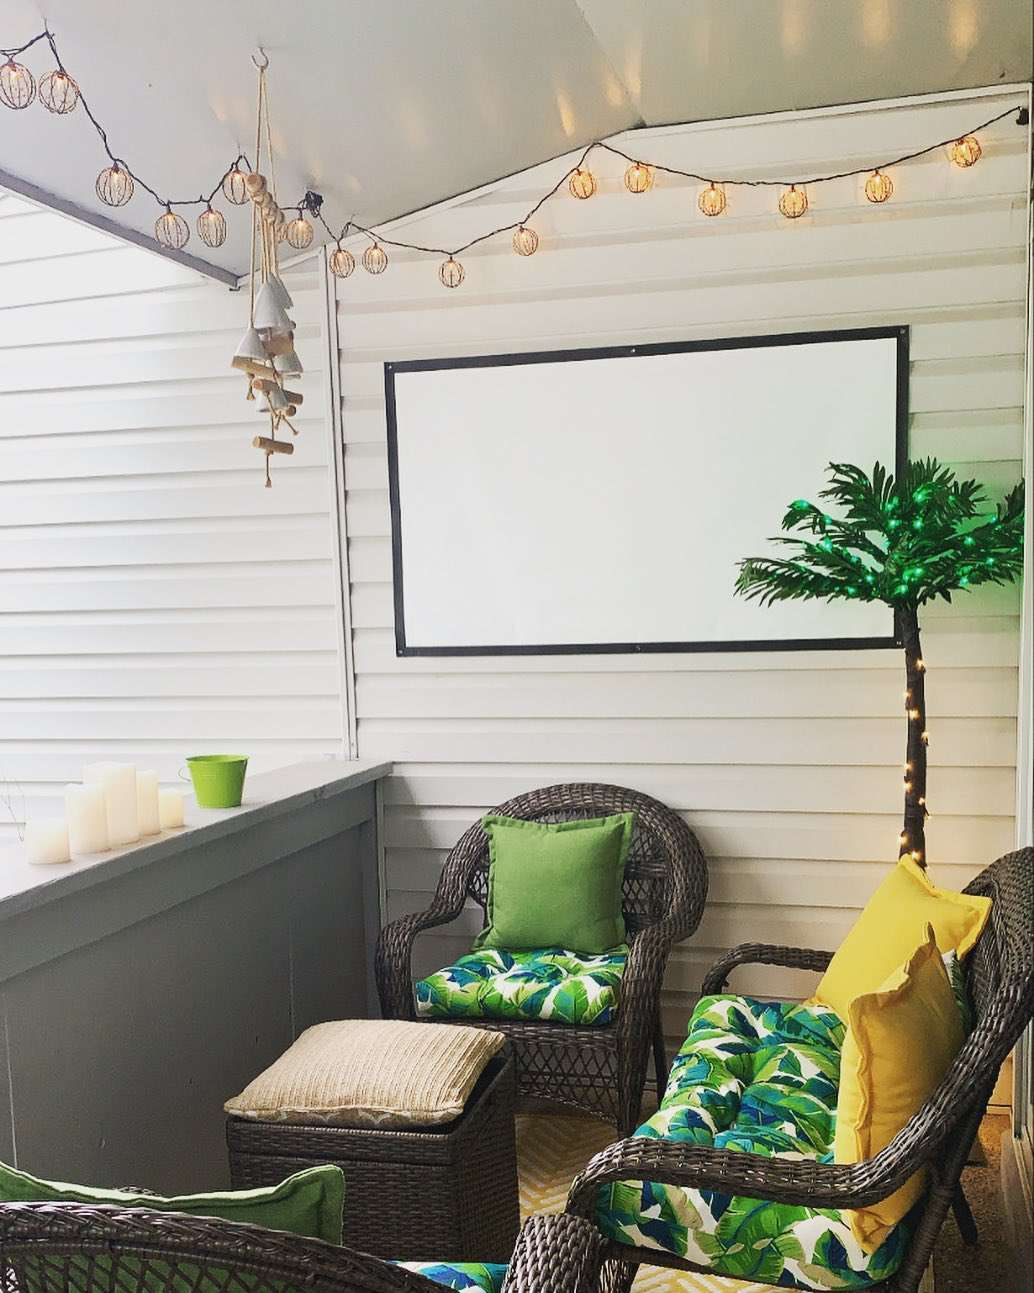 Patio with projector